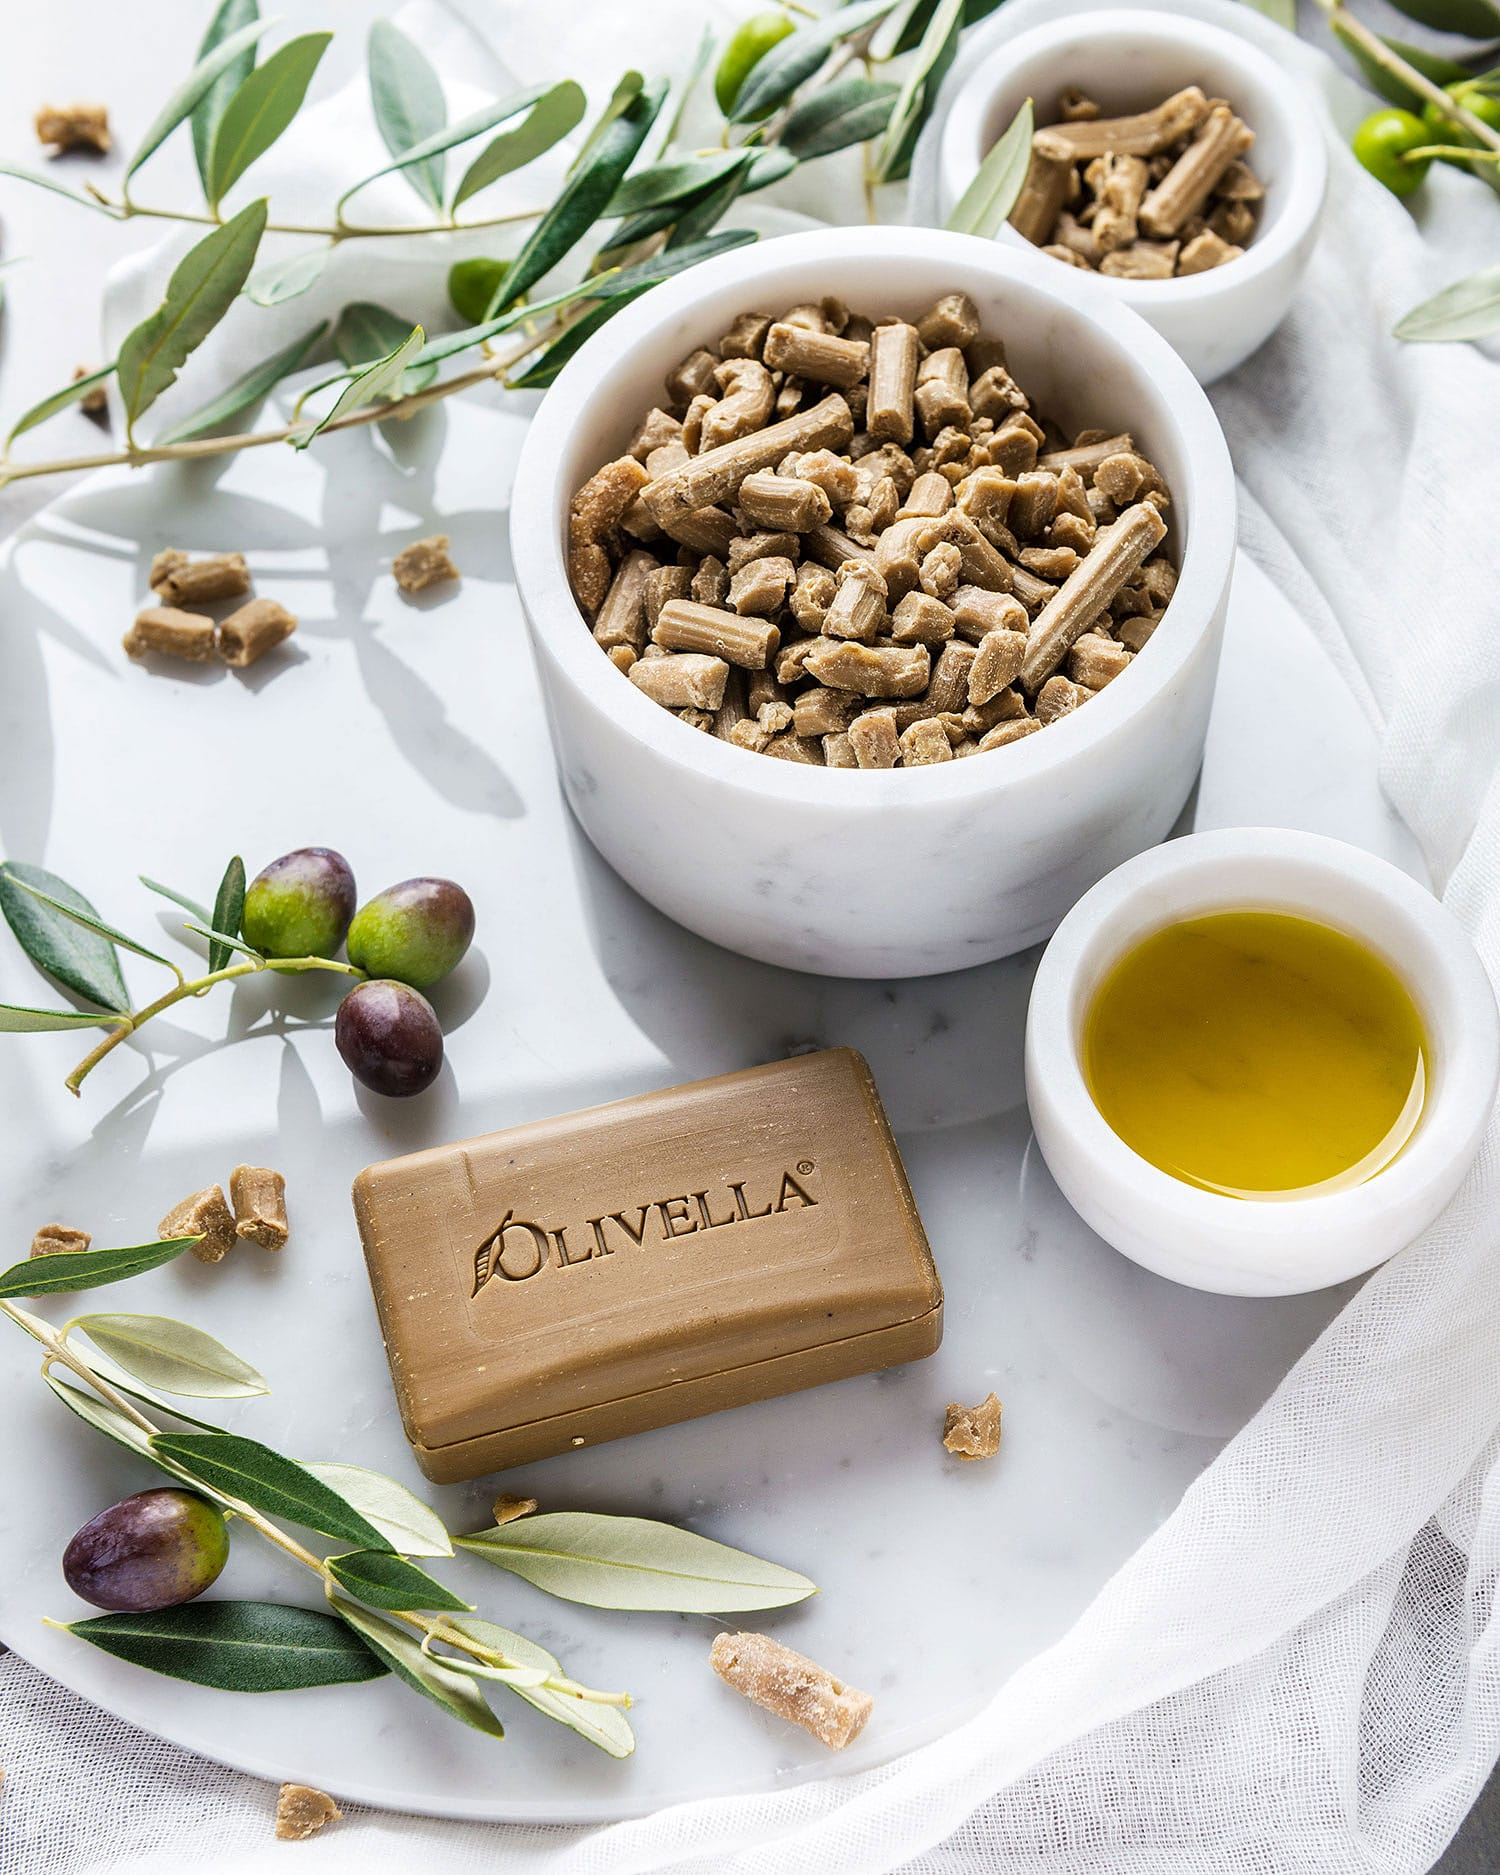 Olive oil soaps from Olivella